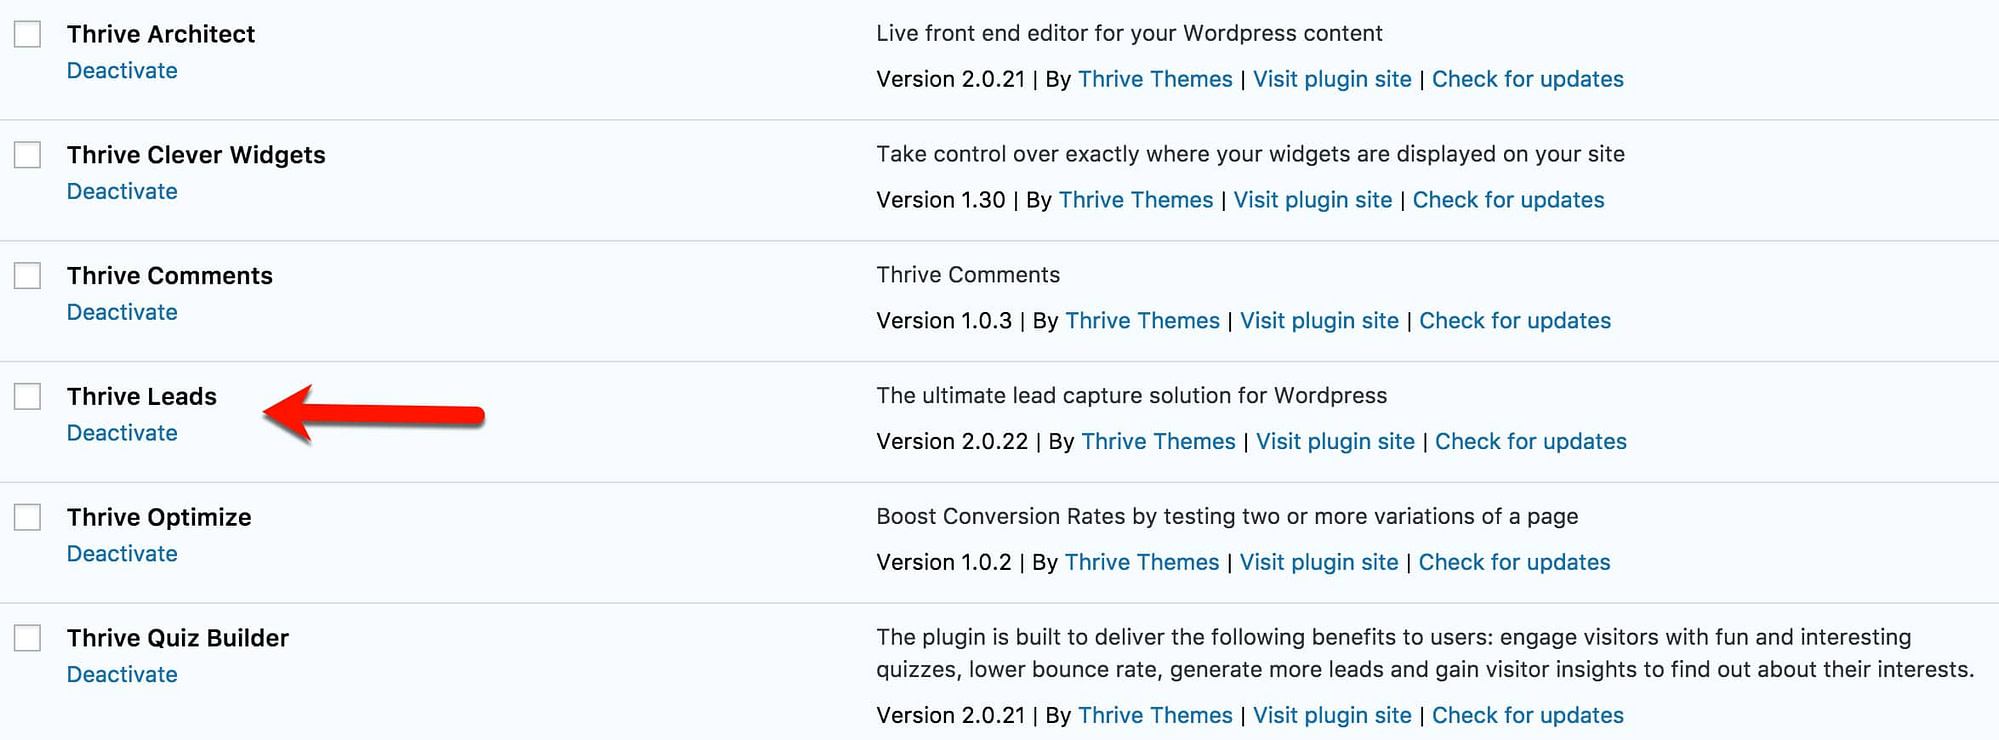 The plugins from Thrive that we have installed at TheTechReviewer.com